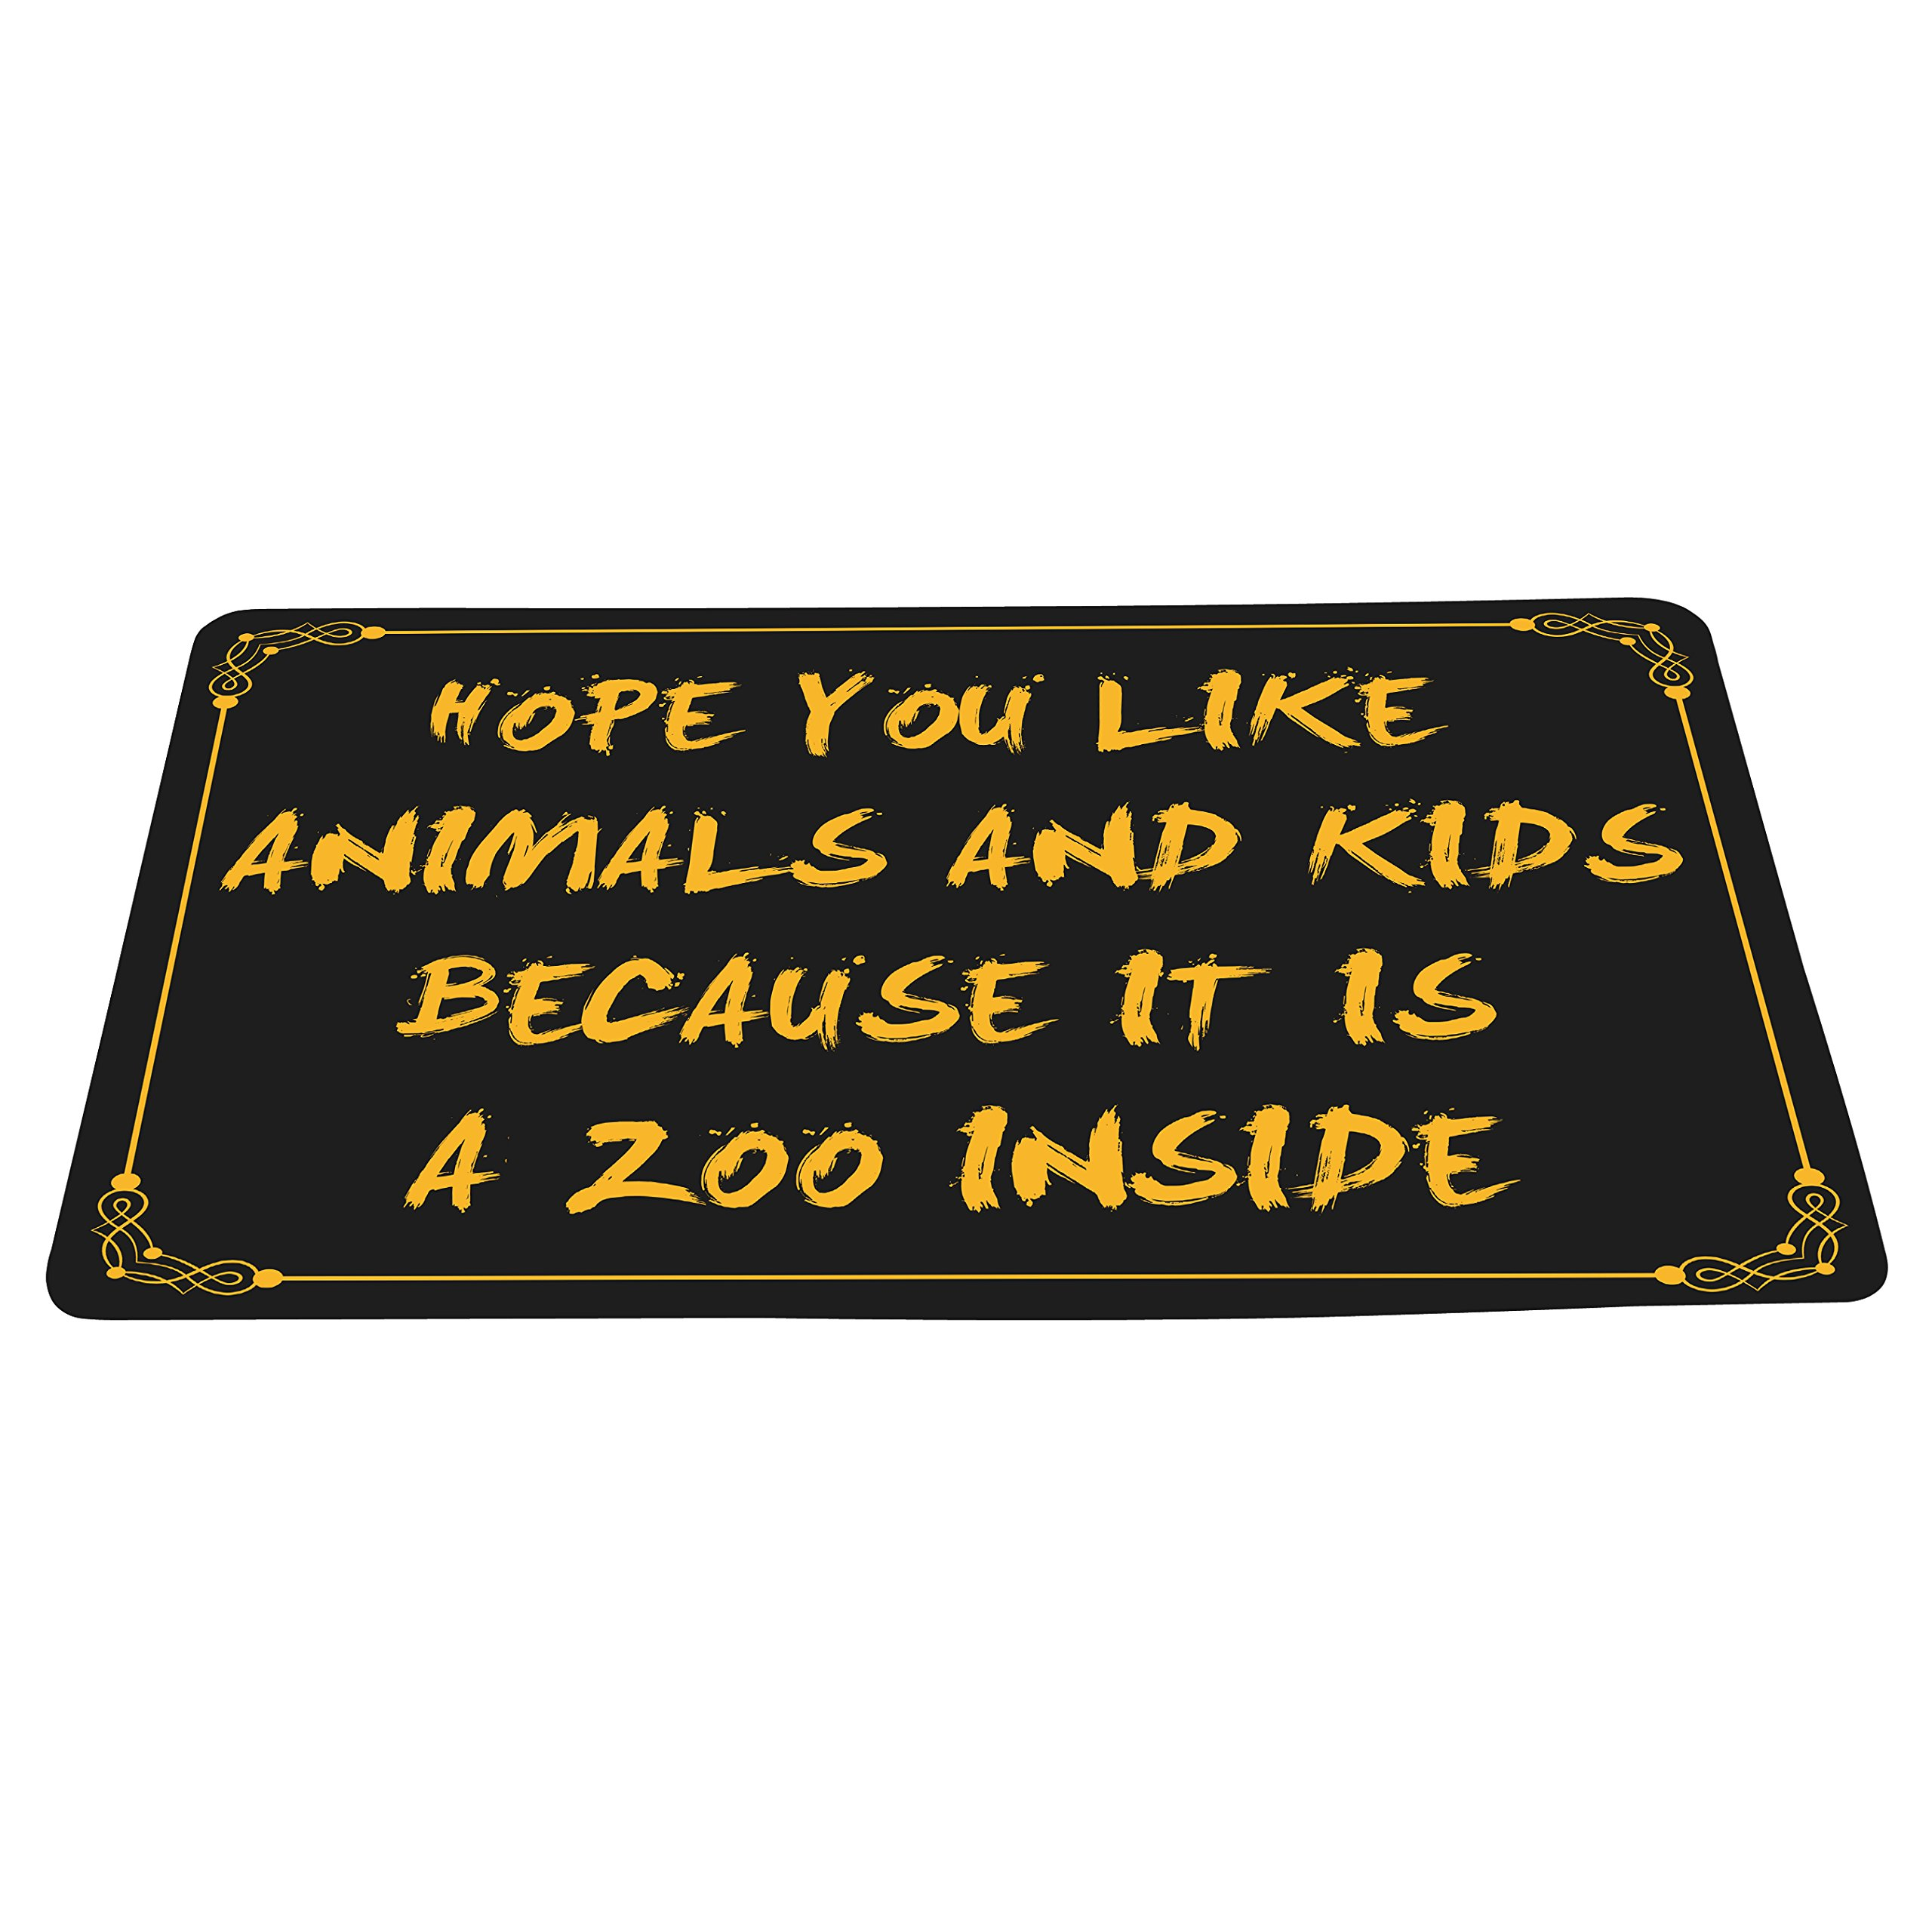 wizardry1986 Hope You Like Animals And Kids Because It Is A Zoo Inside Funny Floor Mat With Non-Slip Backing Novelty Bath Mat Rug Excellent Home Decor (16'' × 24'')